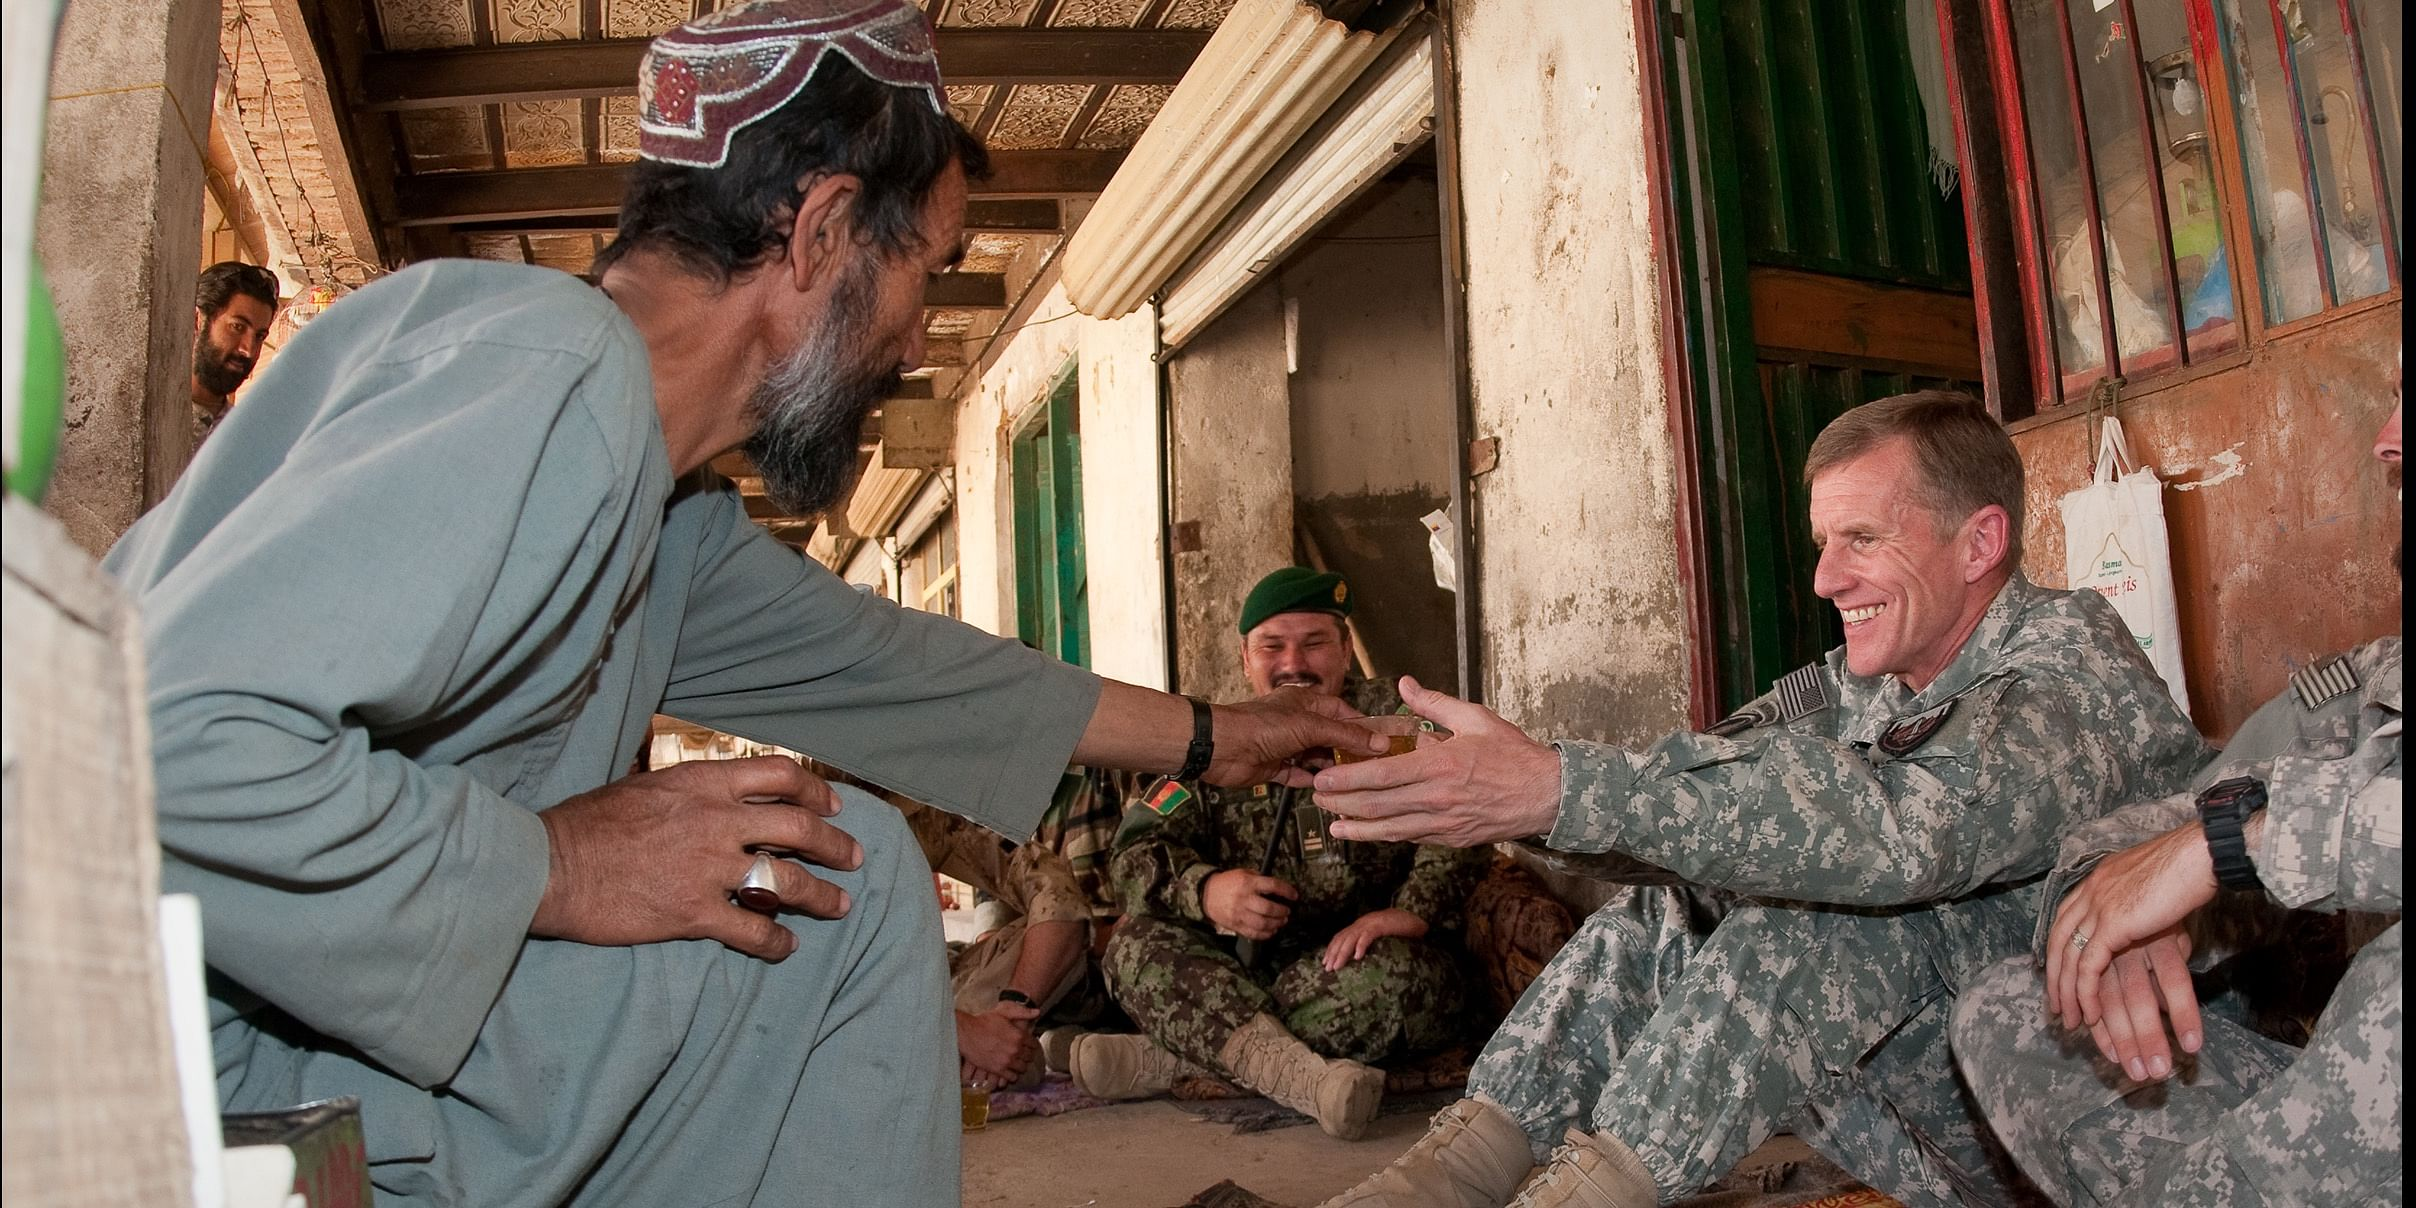 An Afghan old men serve Tea to a US army man, Afghans known the most Hospitable people. Hospitality is a heritage for them.